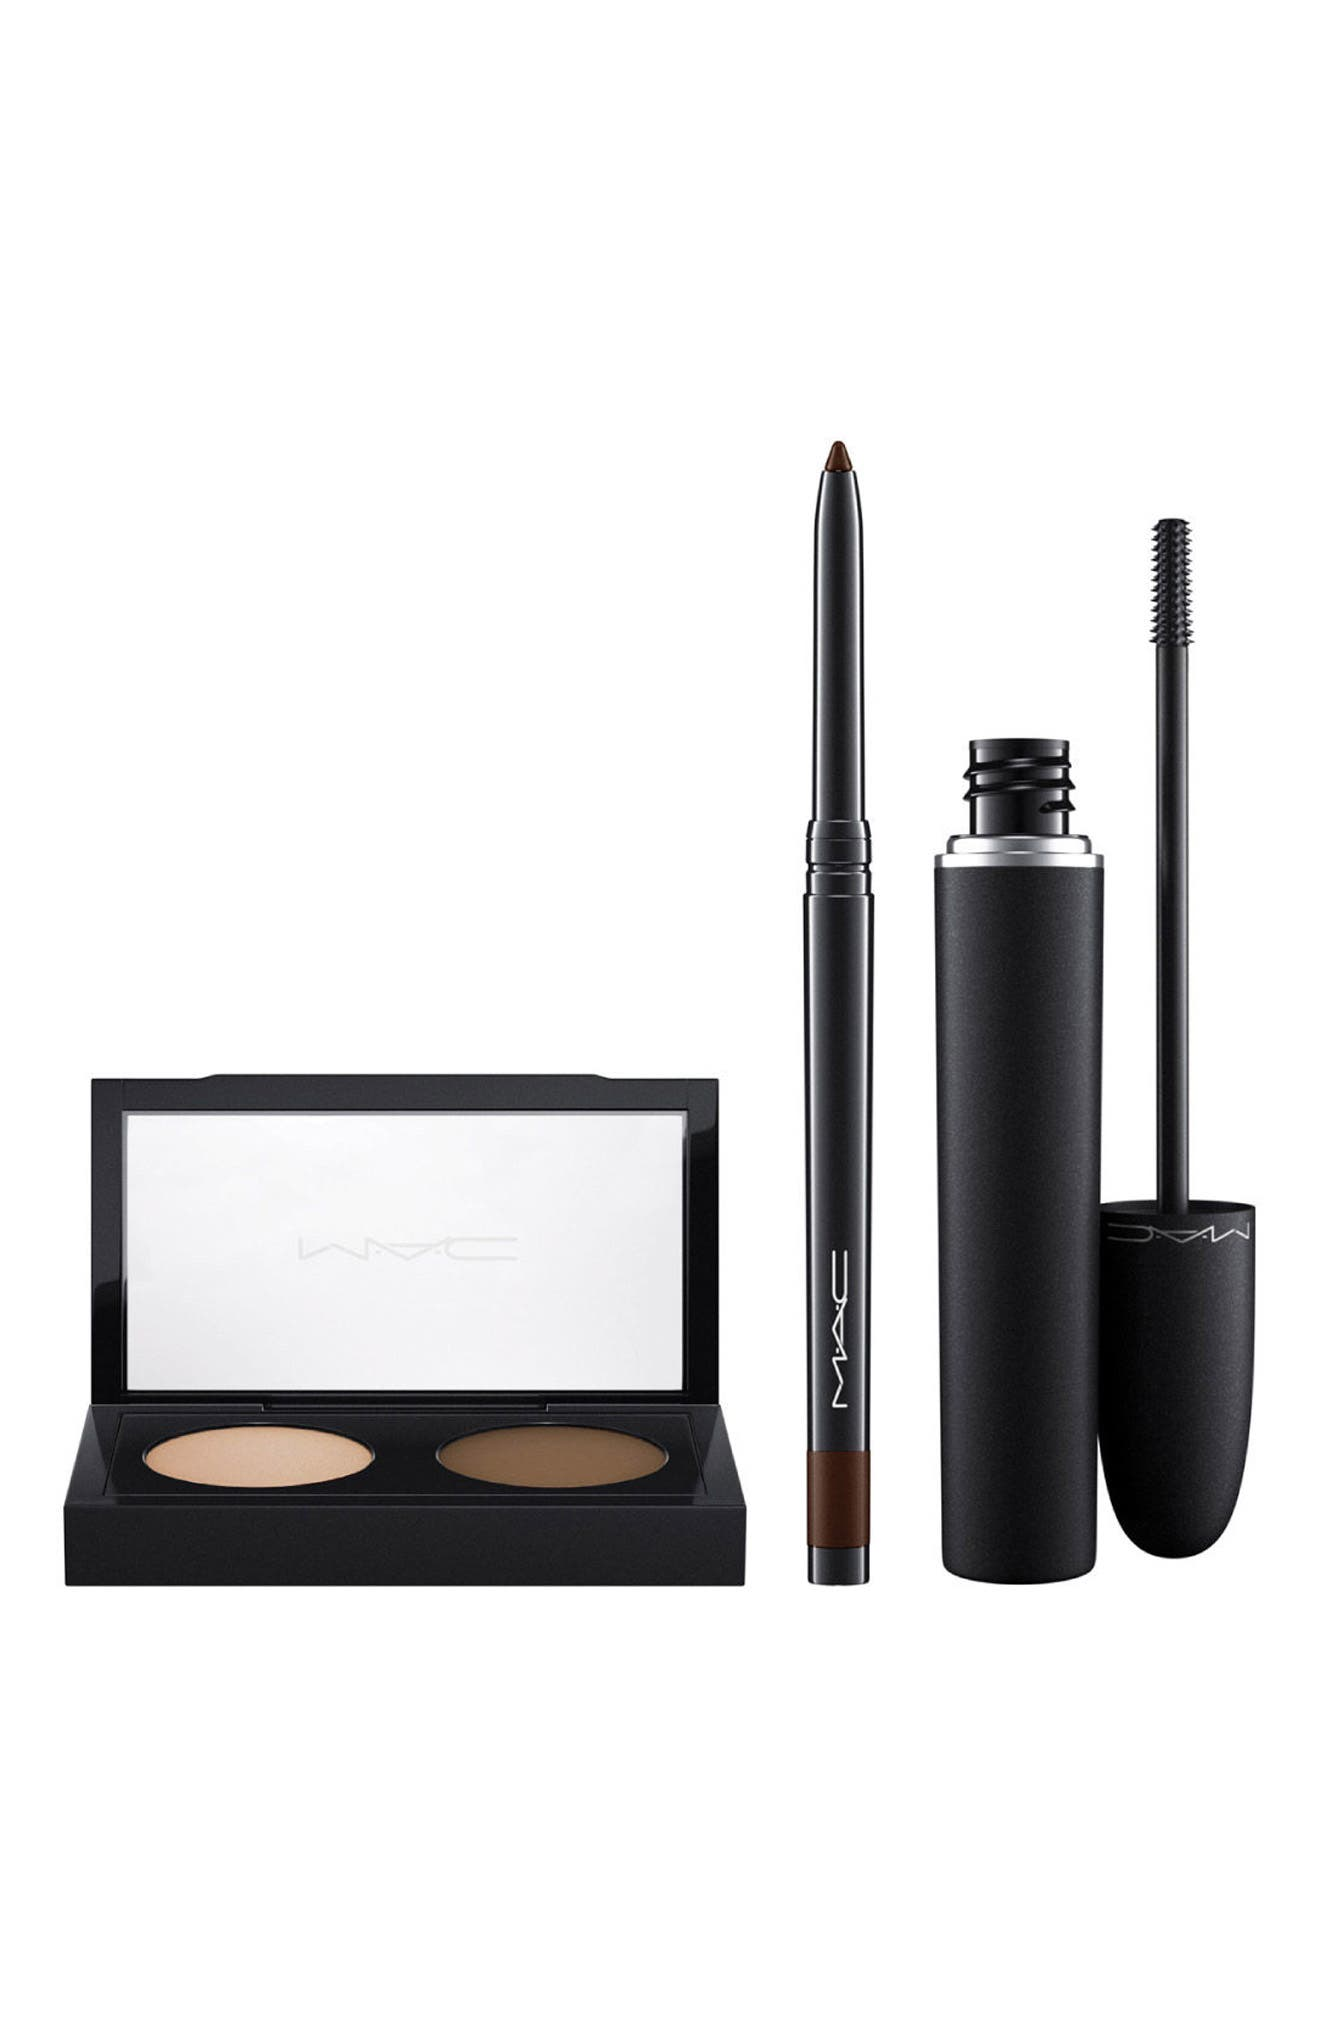 MAC Look in a Box Hooked On Nude Eye Kit ($62 Value)